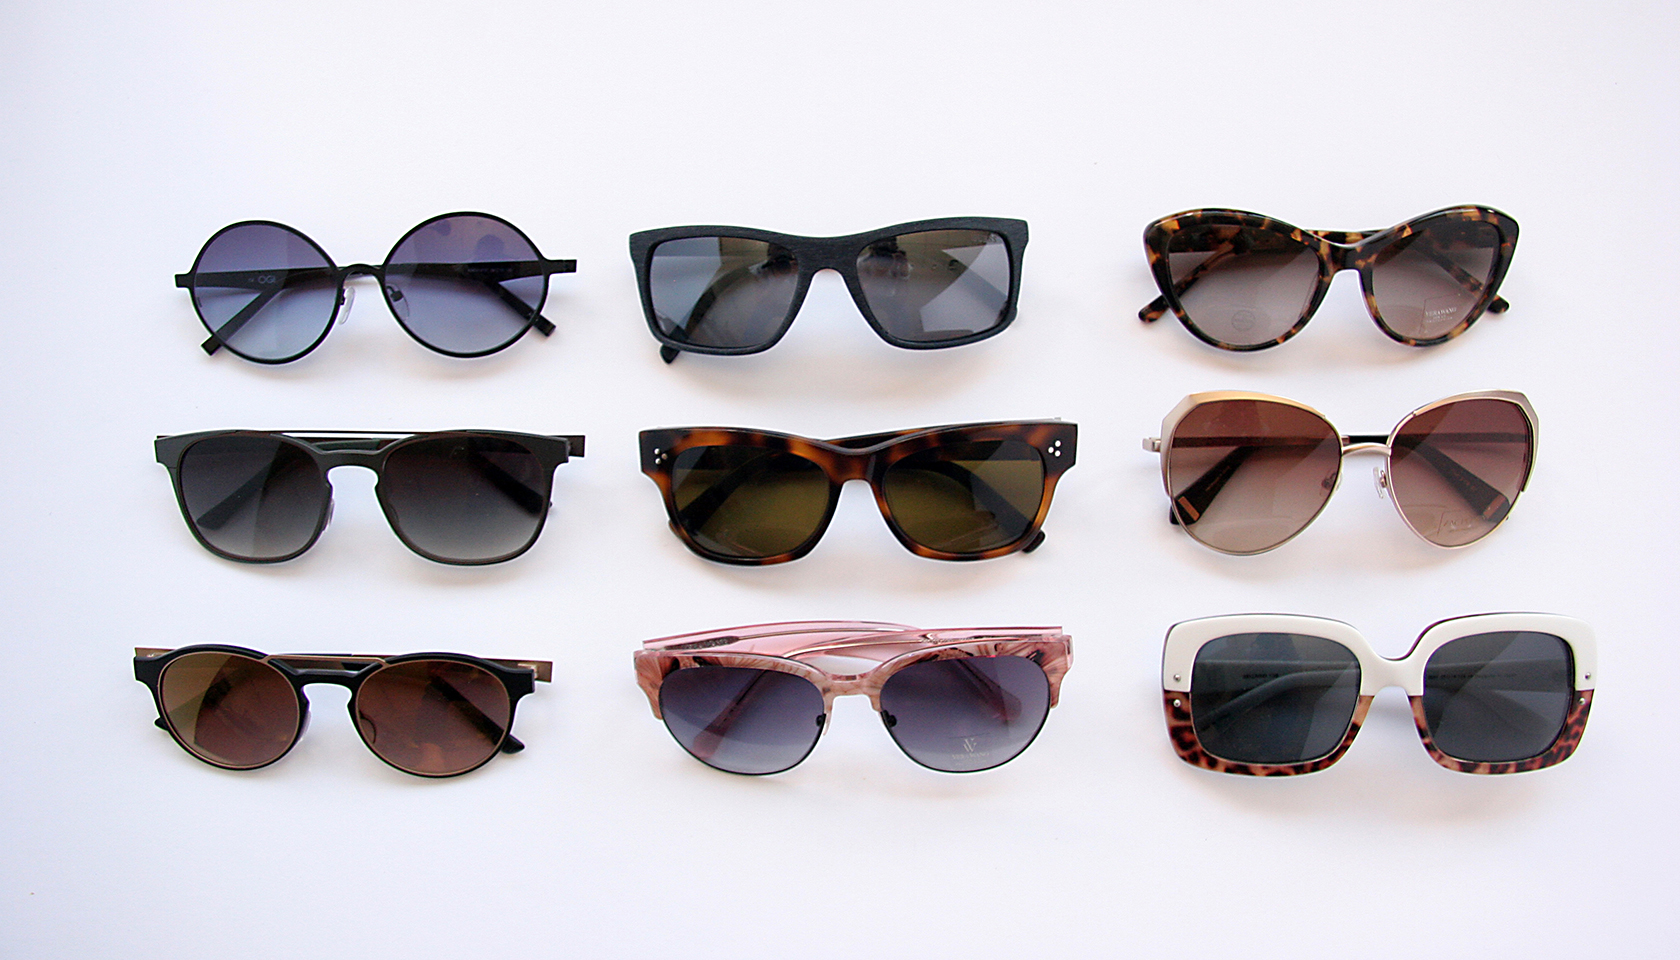 Quality fashion sunglasses at Hillcrest Optical